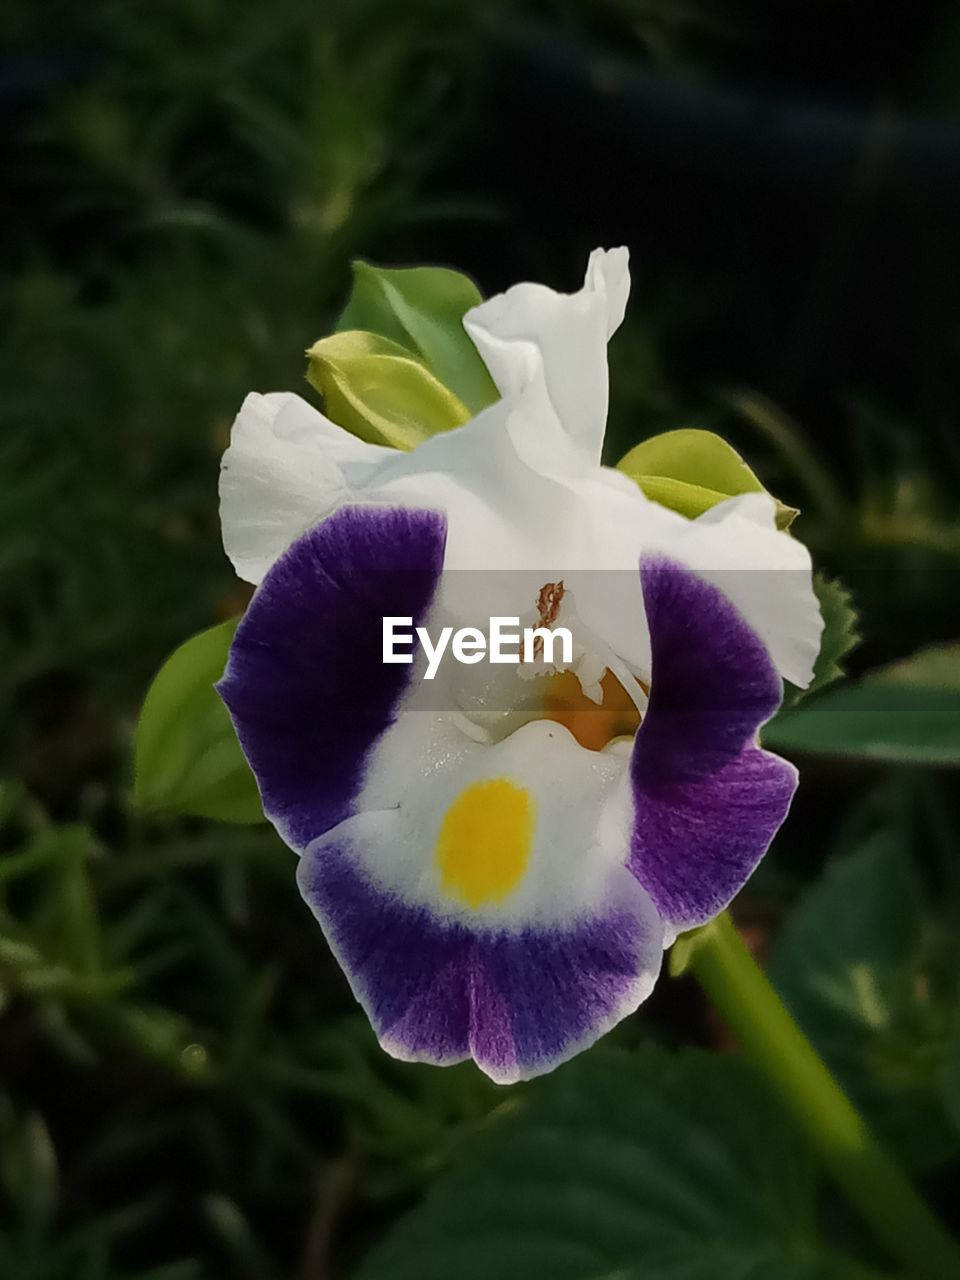 flowering plant, petal, flower, plant, freshness, beauty in nature, fragility, vulnerability, growth, inflorescence, flower head, close-up, purple, nature, iris, focus on foreground, day, no people, pollen, iris - plant, outdoors